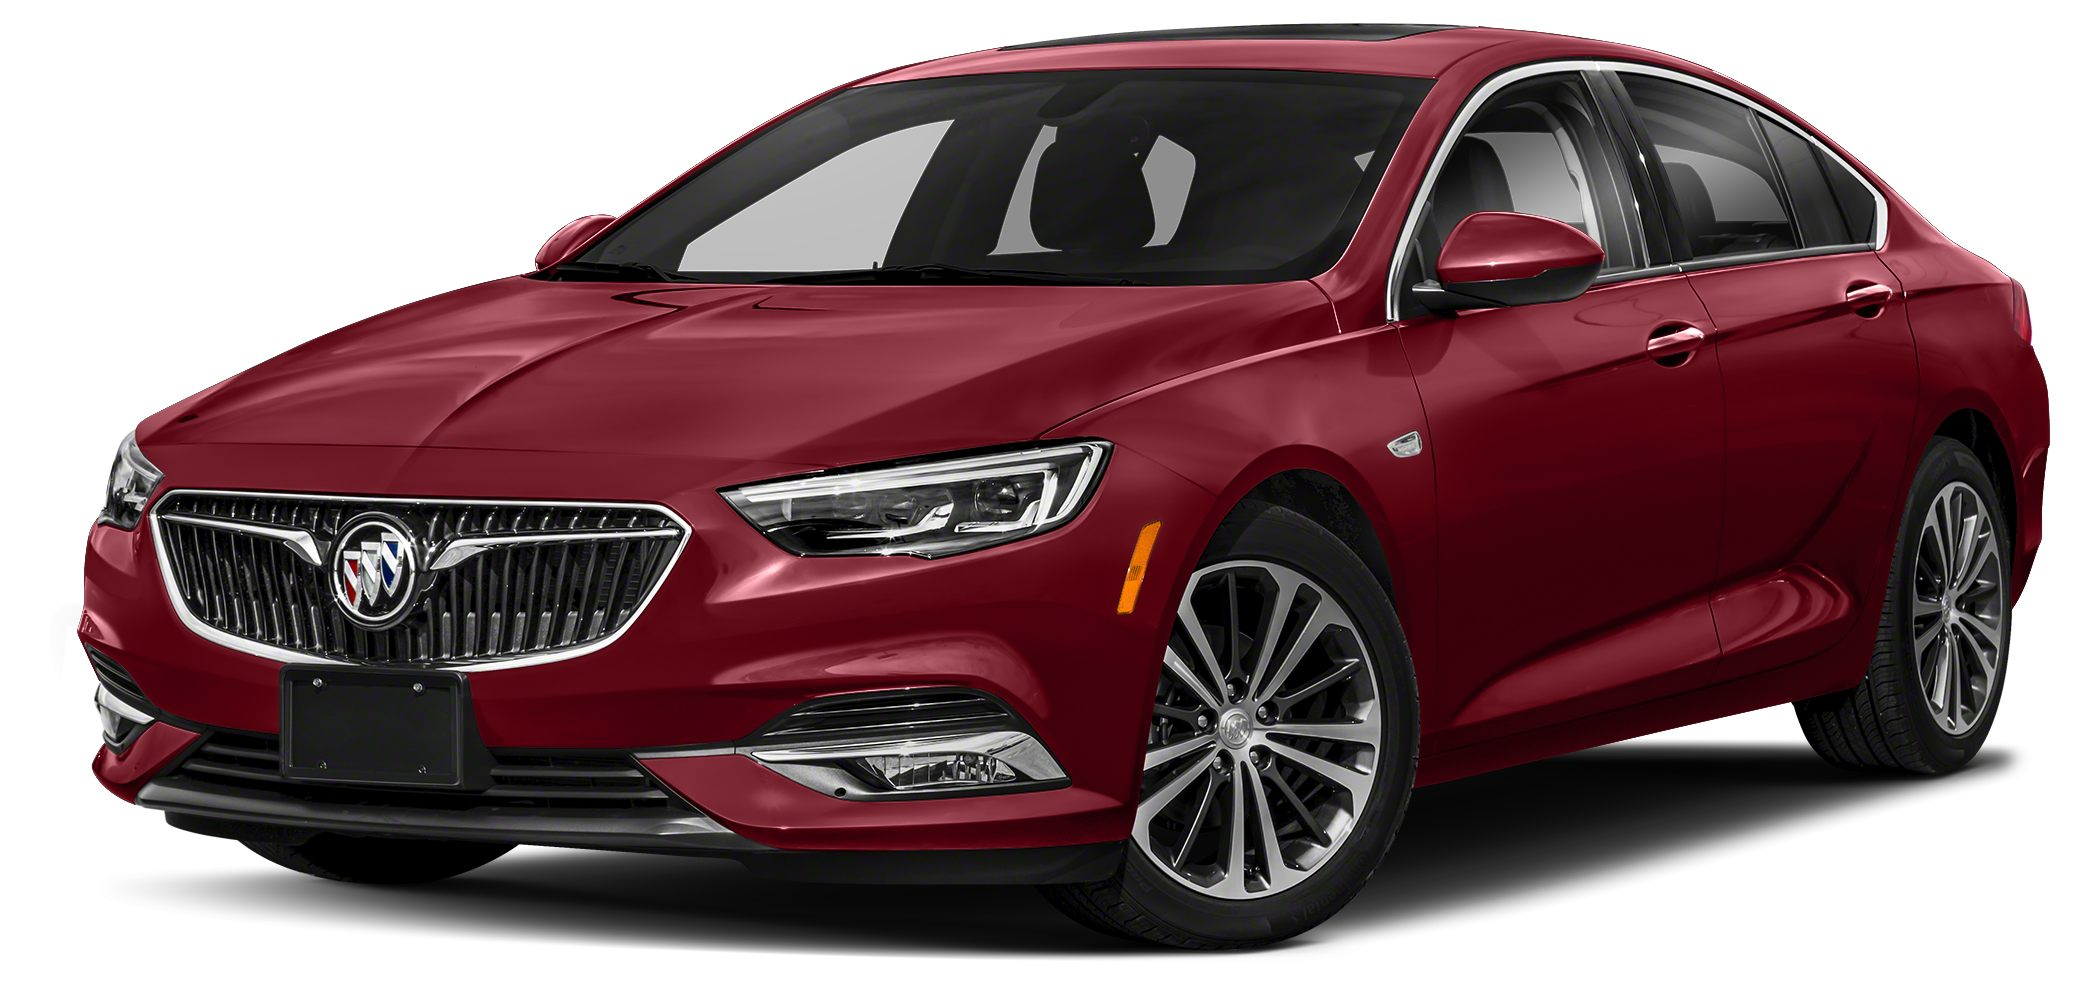 2018 Buick Regal Sportback Essence This 2018 Buick Regal Sportback Essence is a great option for f